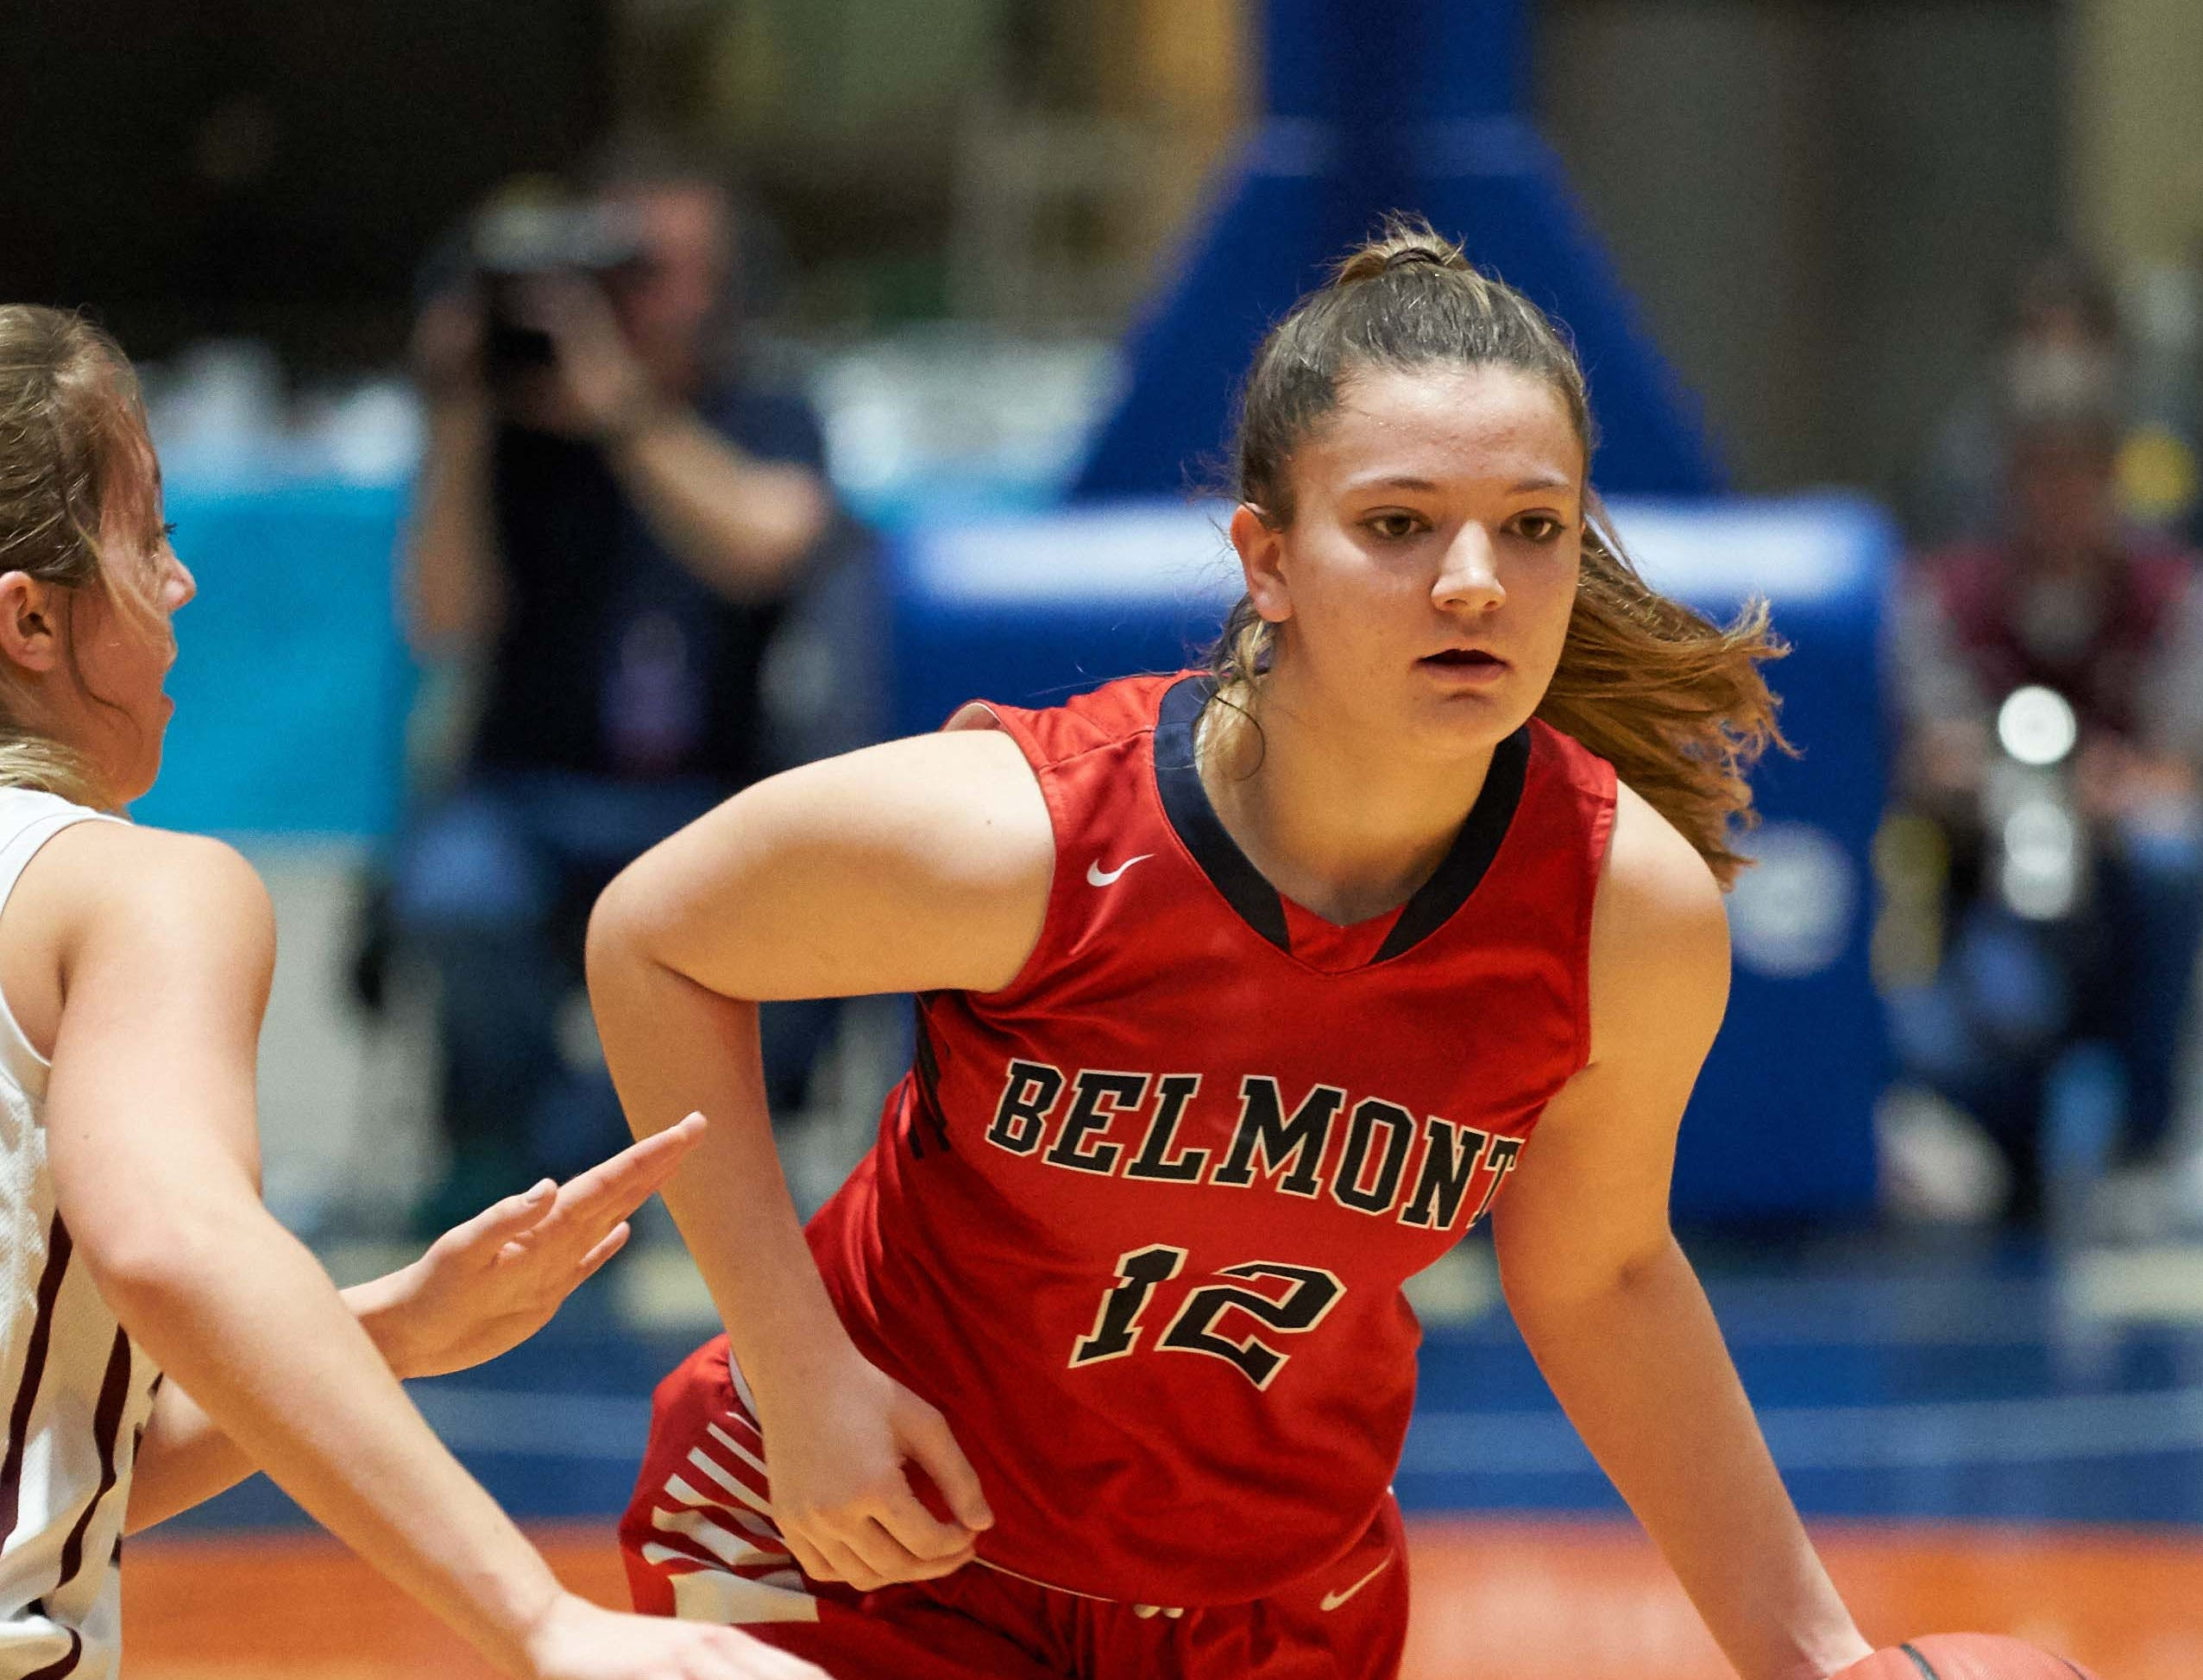 Belmont's Lacie Walker drives during the MHSAA 3A Girls Basketball Championship Finals held at the Mississippi Coliseum in Jackson, MS, Saturday March 9th, 2019.(Bob Smith)